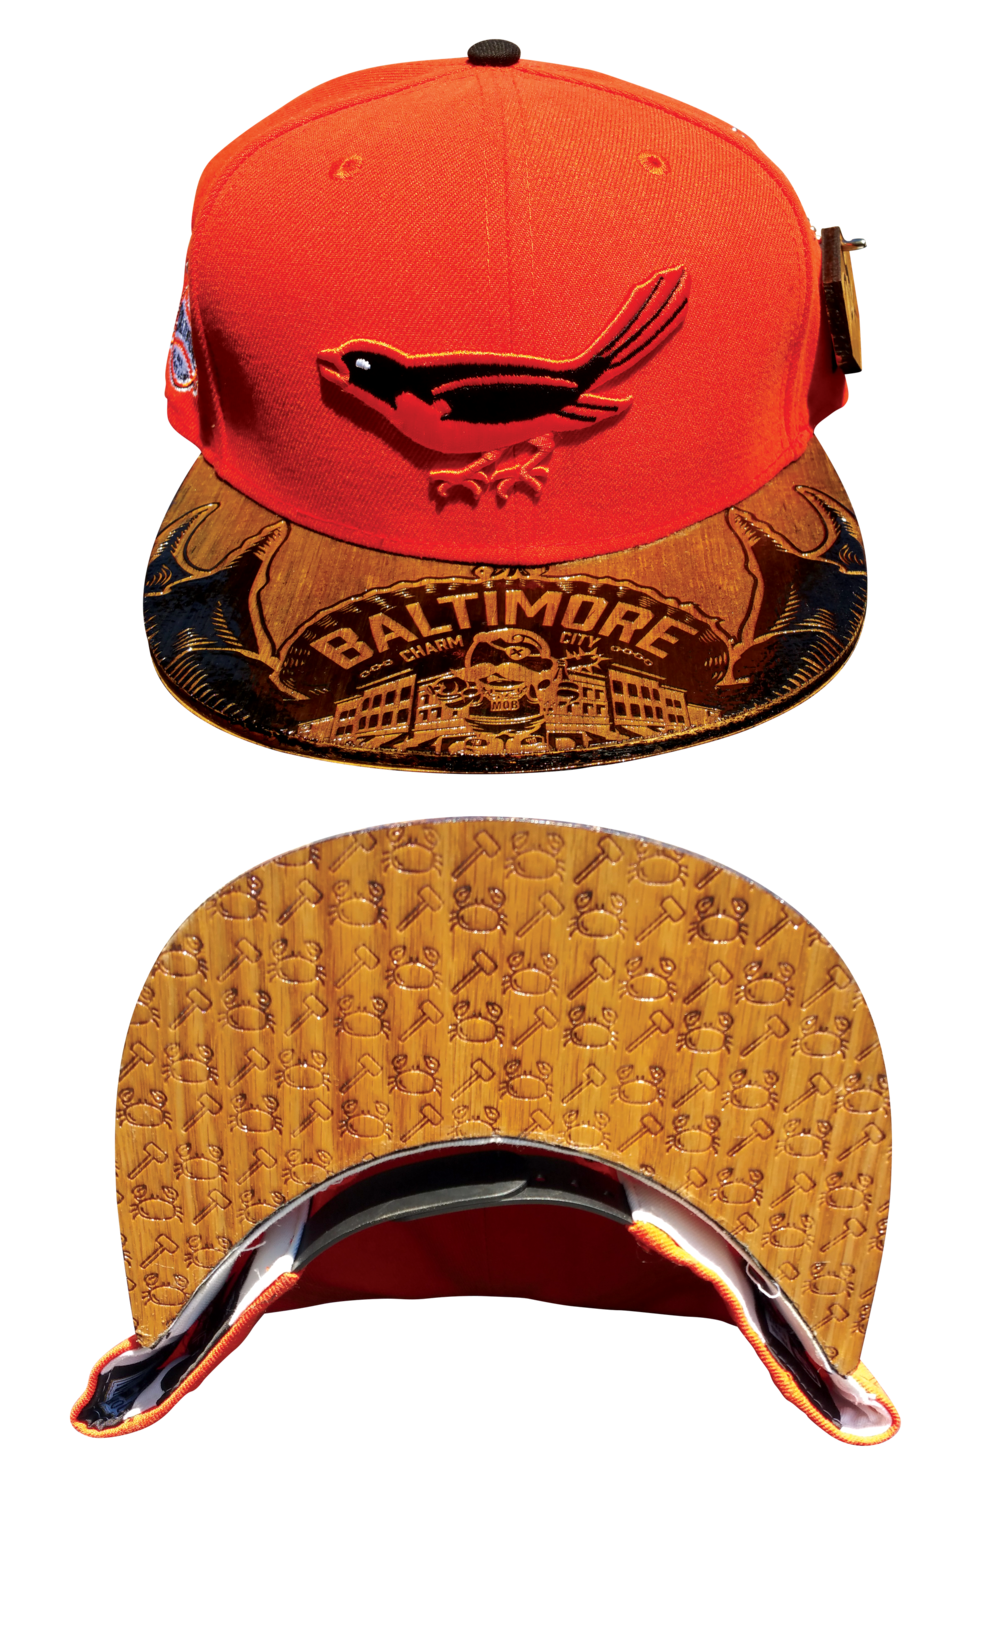 24K Wood Etched Brims Hats San Diego, CA